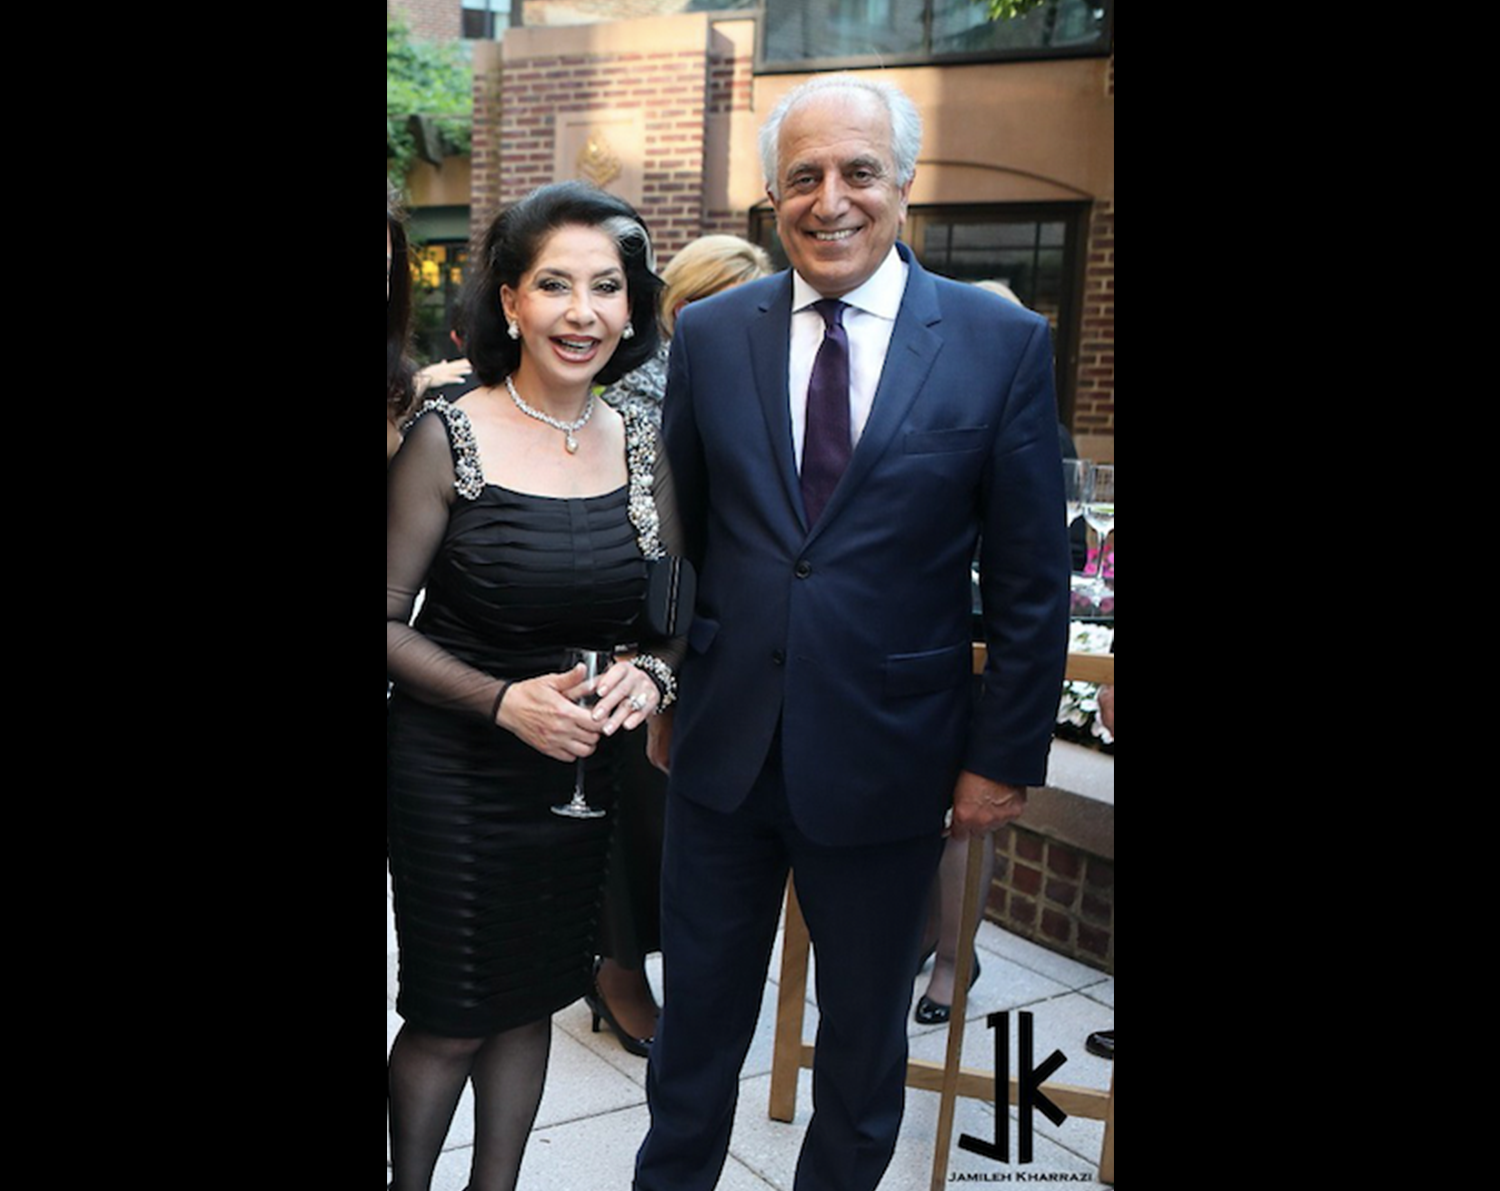 Lady-Jamileh-Kharrazi-and-Ambassador-Zalmay-Khalilzad-at-the-American-University-of-Afghanistan-Fundraising-event-in-Washington-DC2